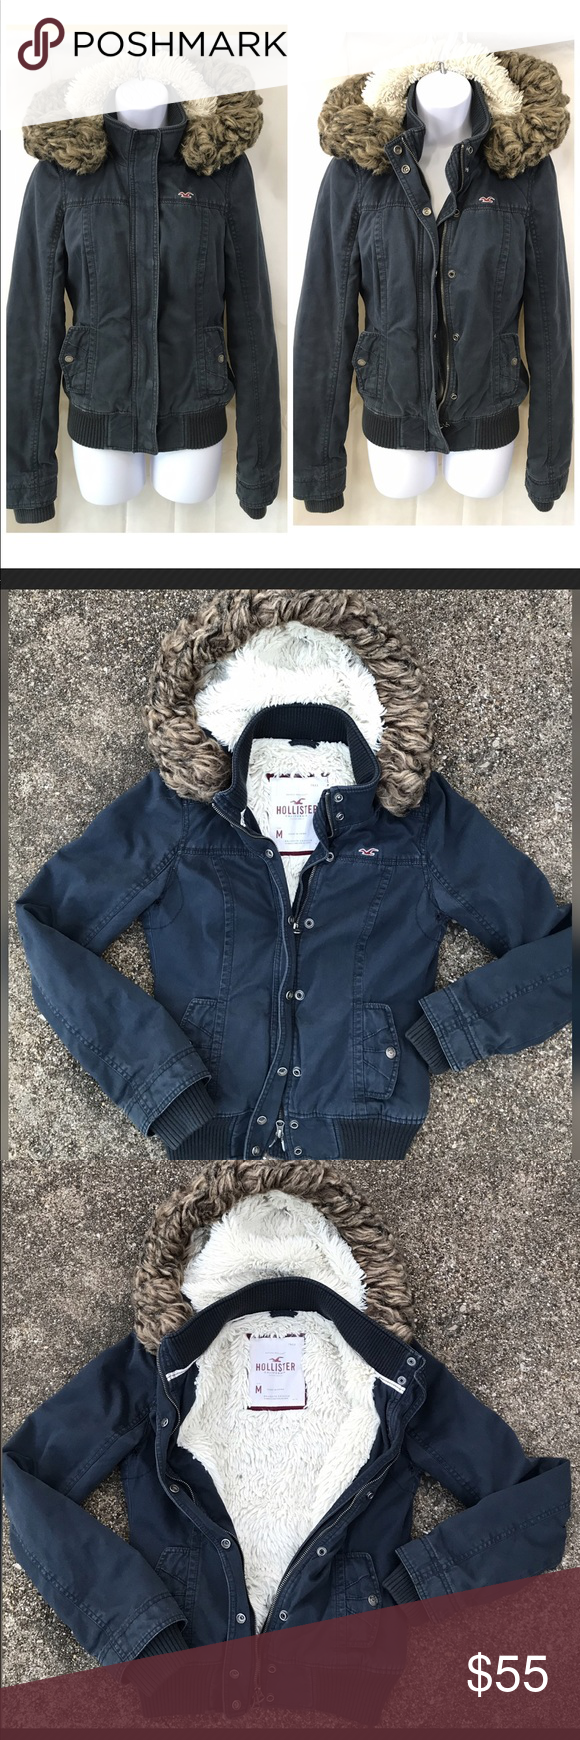 Hollister Faux Fur Fully Lined Coat Size Medium Hollister Hollister Jackets Coat [ 1740 x 580 Pixel ]